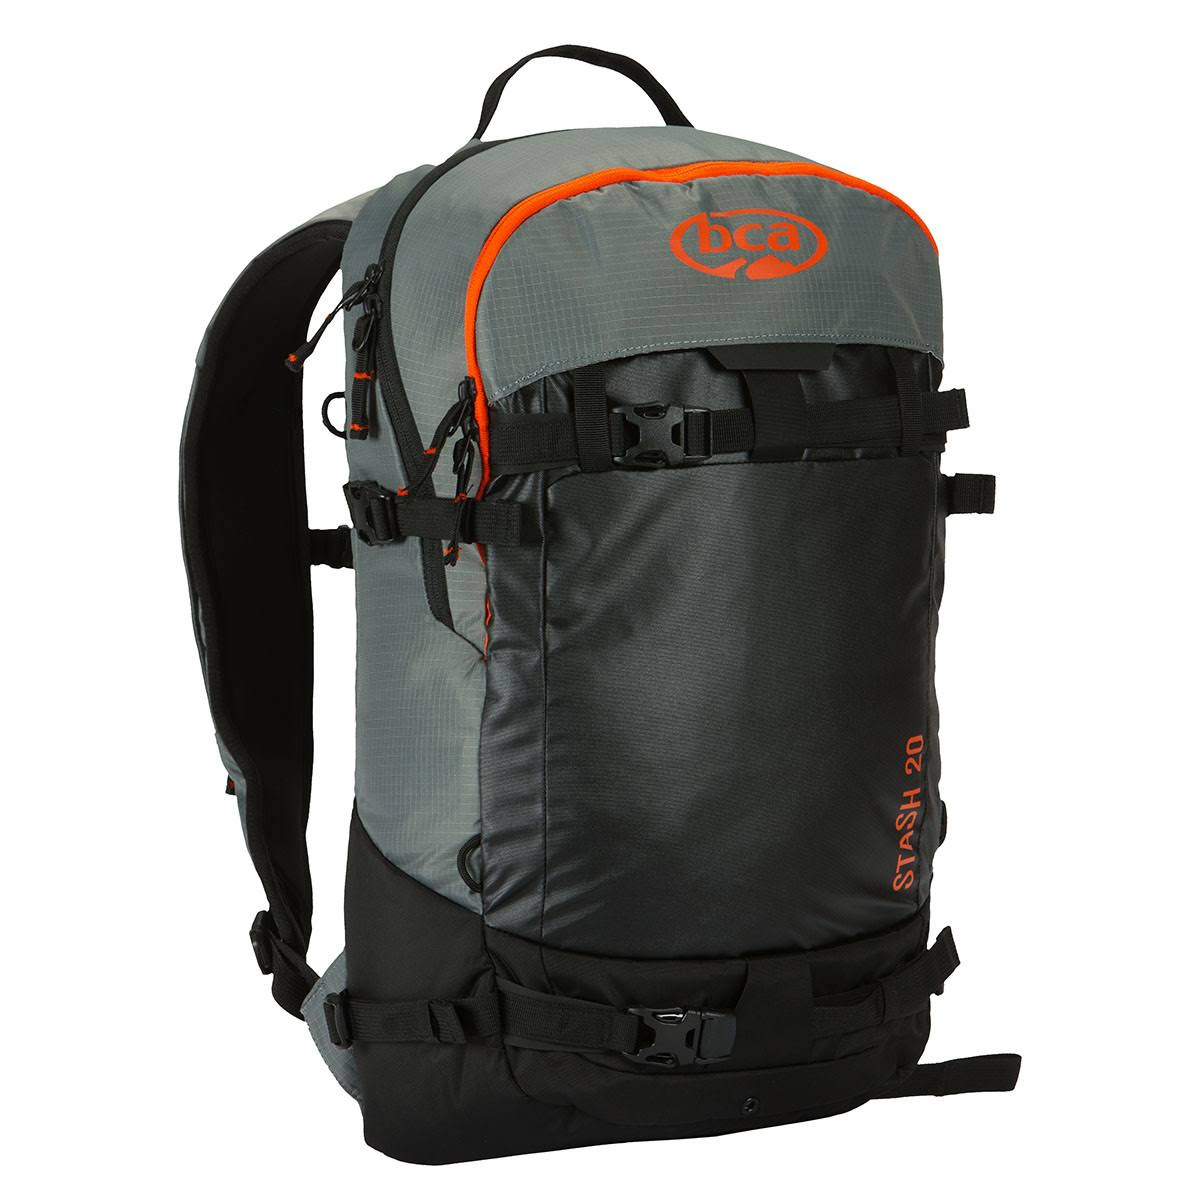 Backcountry Access Stash 20 Backpack Graphite C1917001010